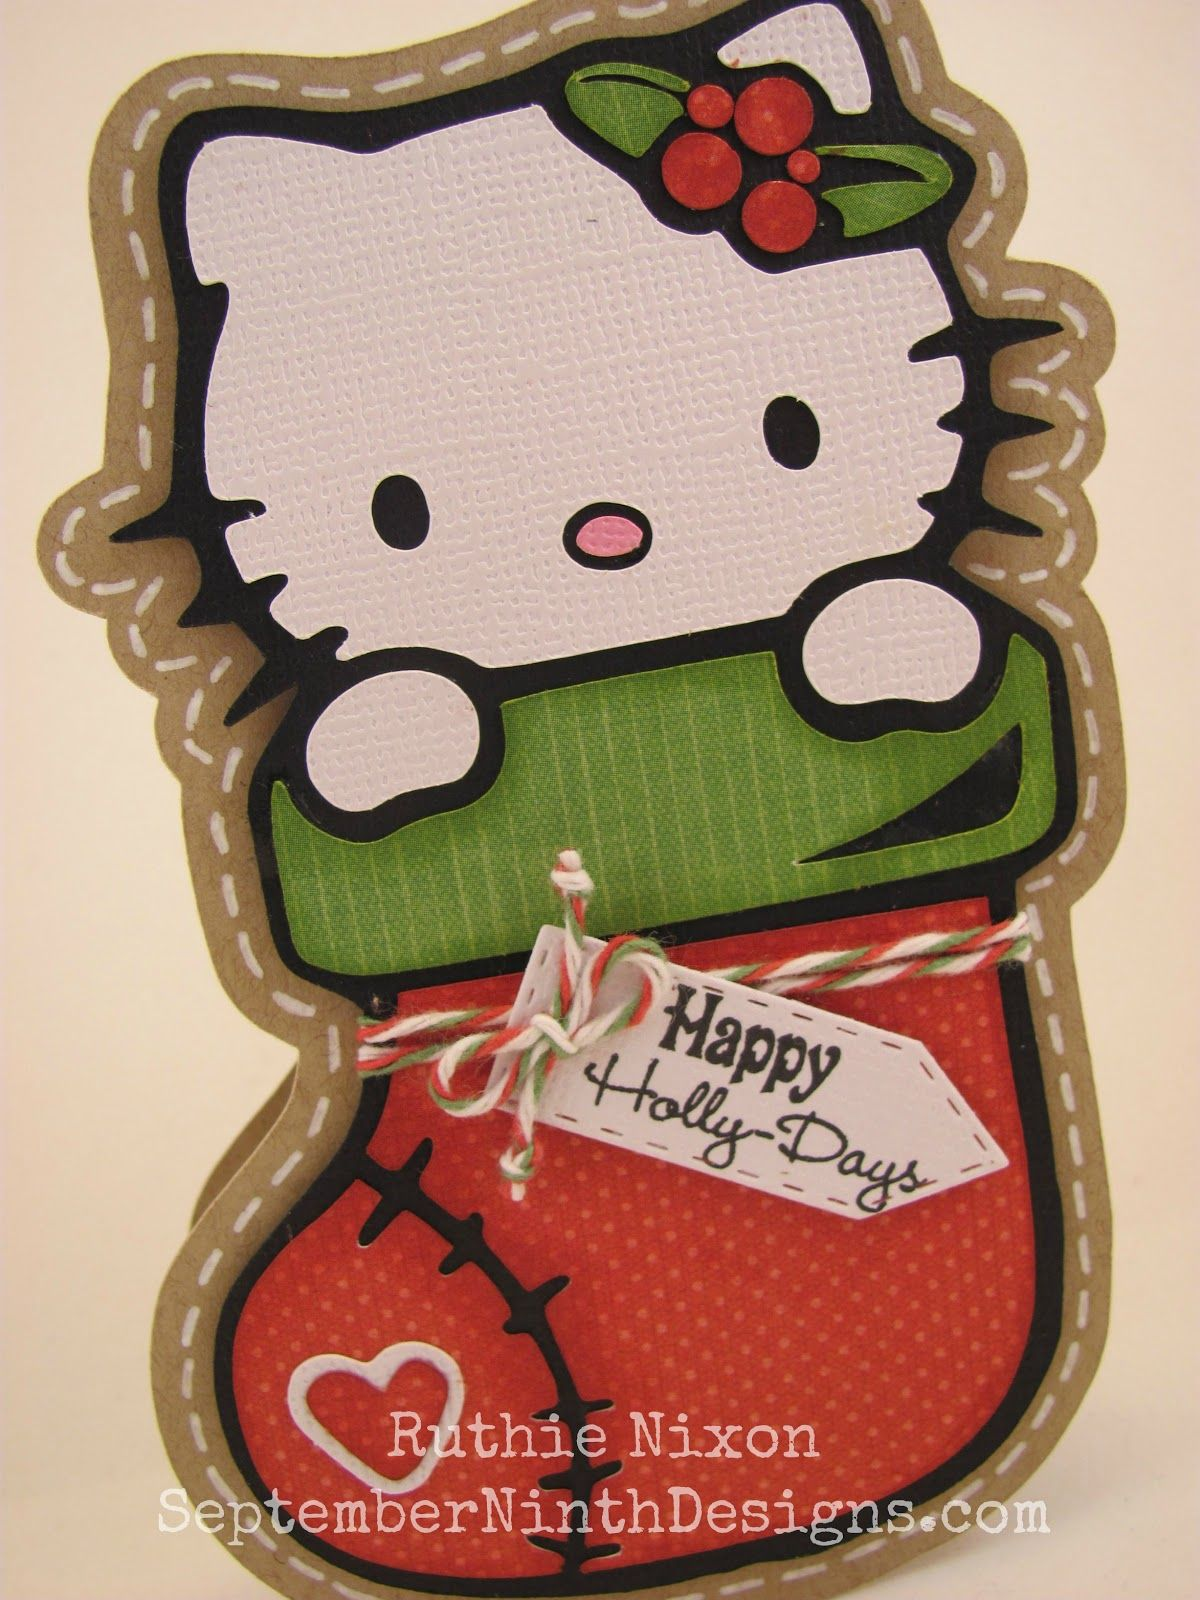 Kitty Stocking Free Svg File. #hellokitty #christmas